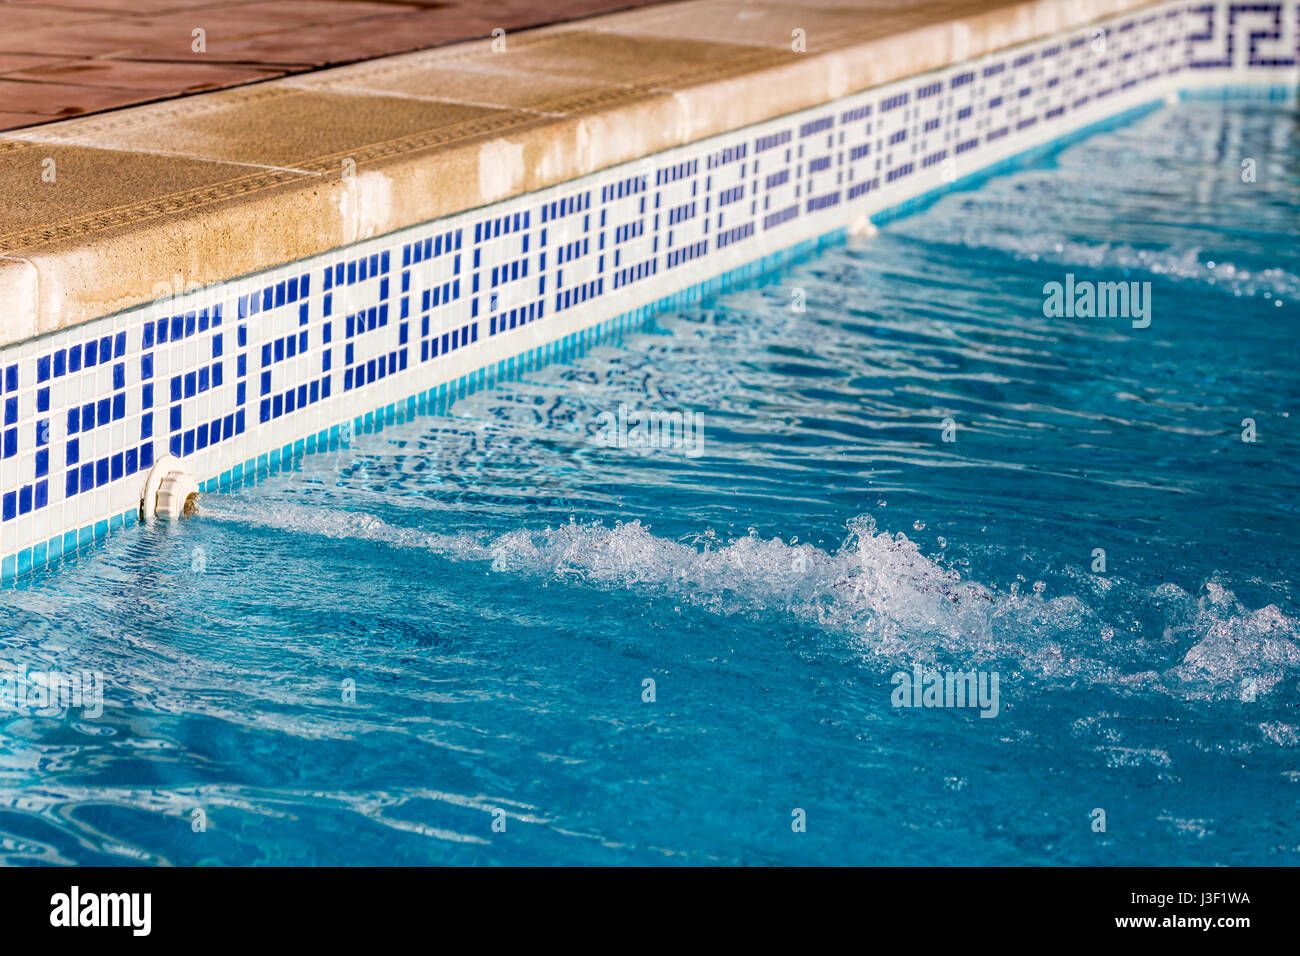 Water jets flowing into a swimming pool with blue tiles Stock Photo ...